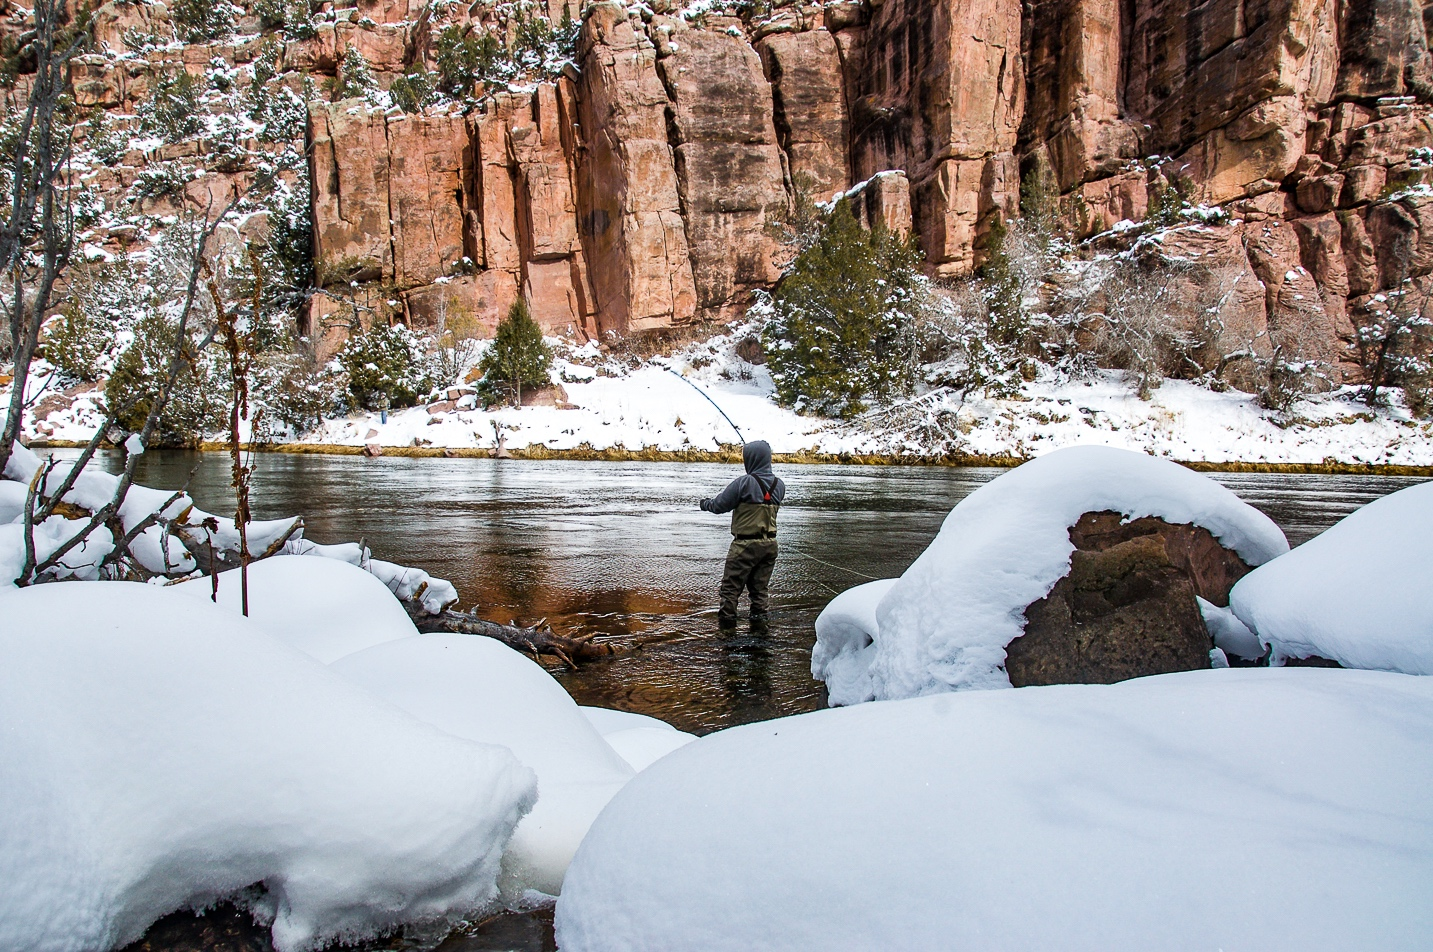 Fly Fishing Utah's Green River in the Winter